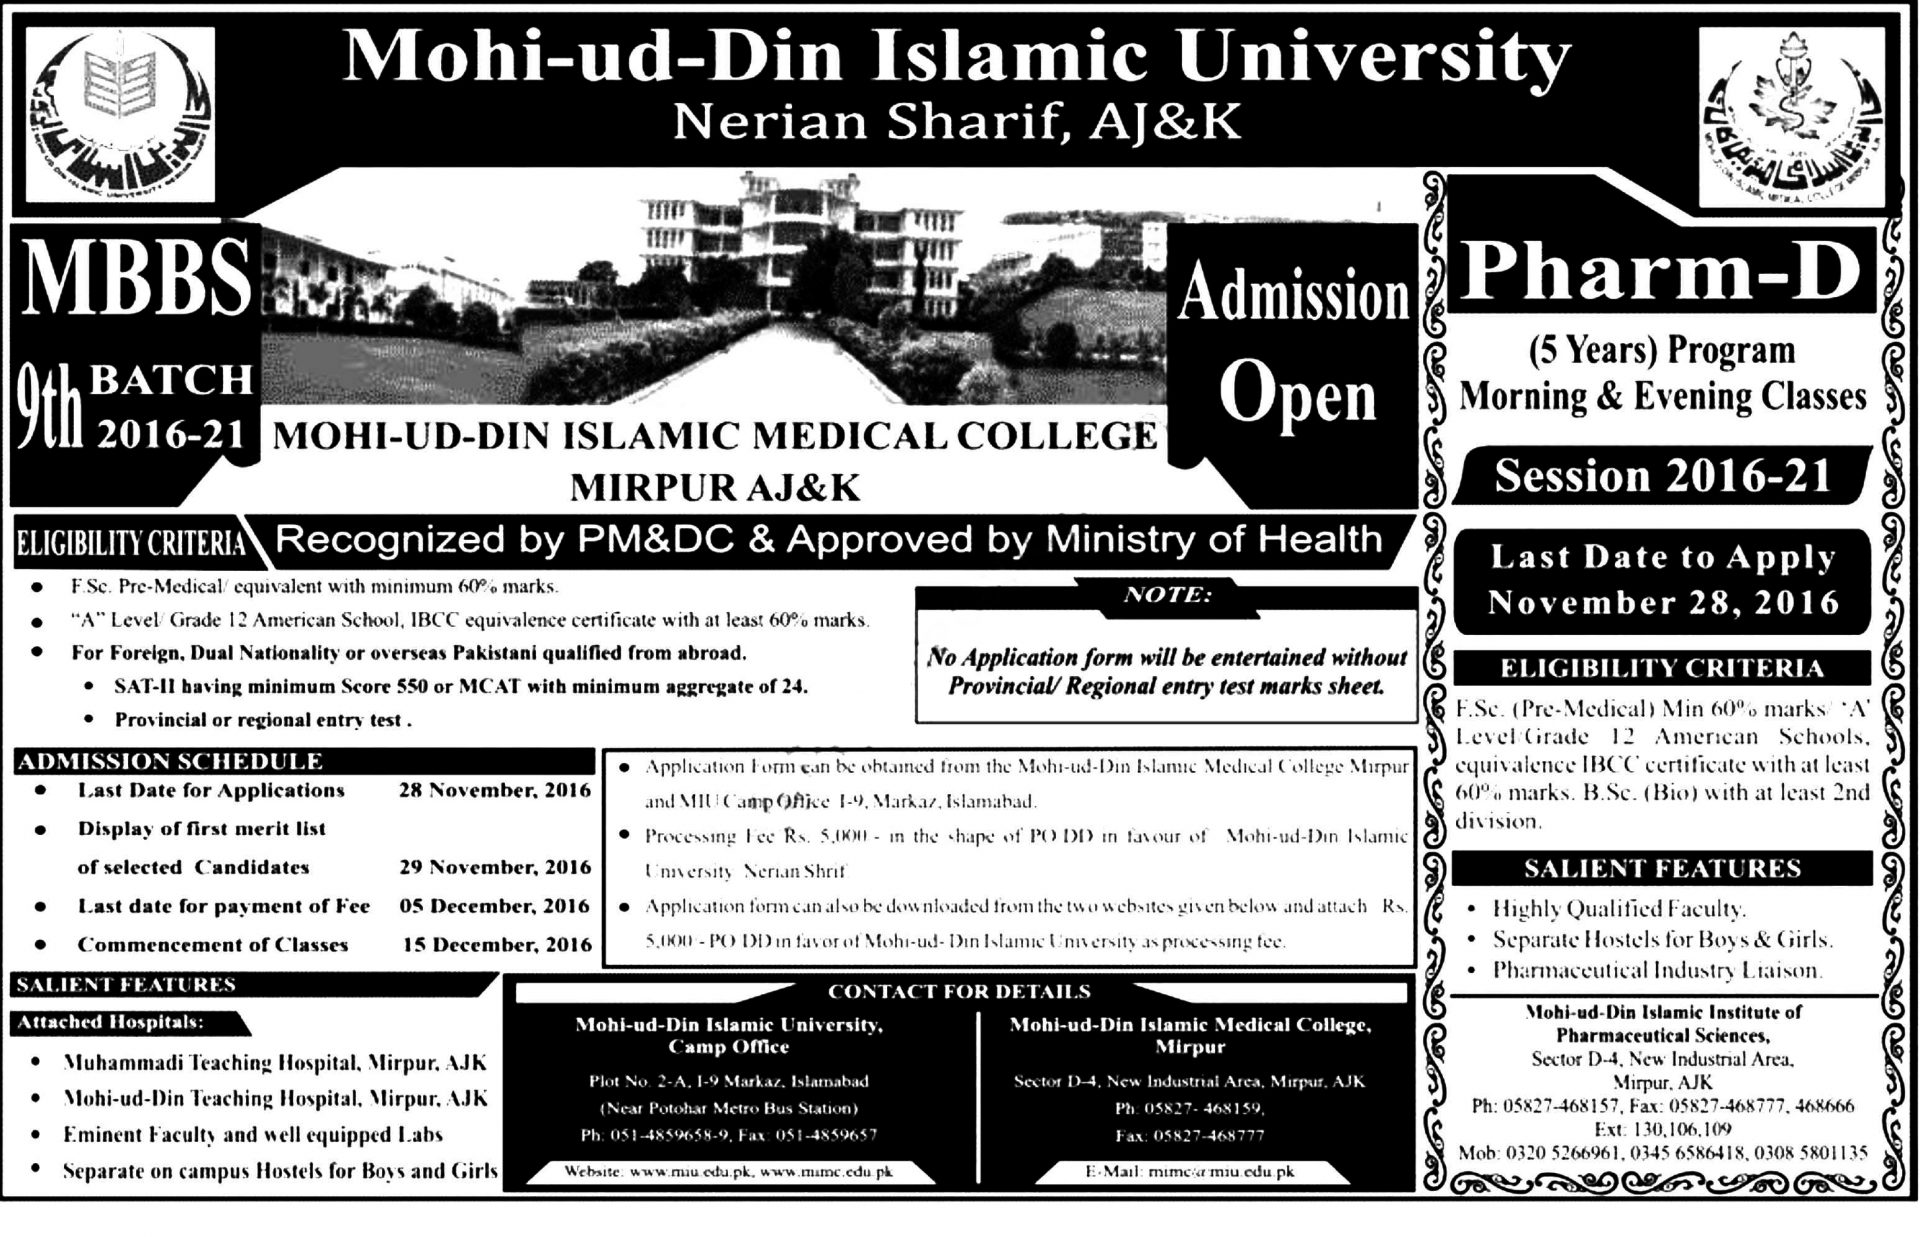 Mohiuddin Islamic Medical College Mirpur Admission 2016-17 MBBS Downlaod Form